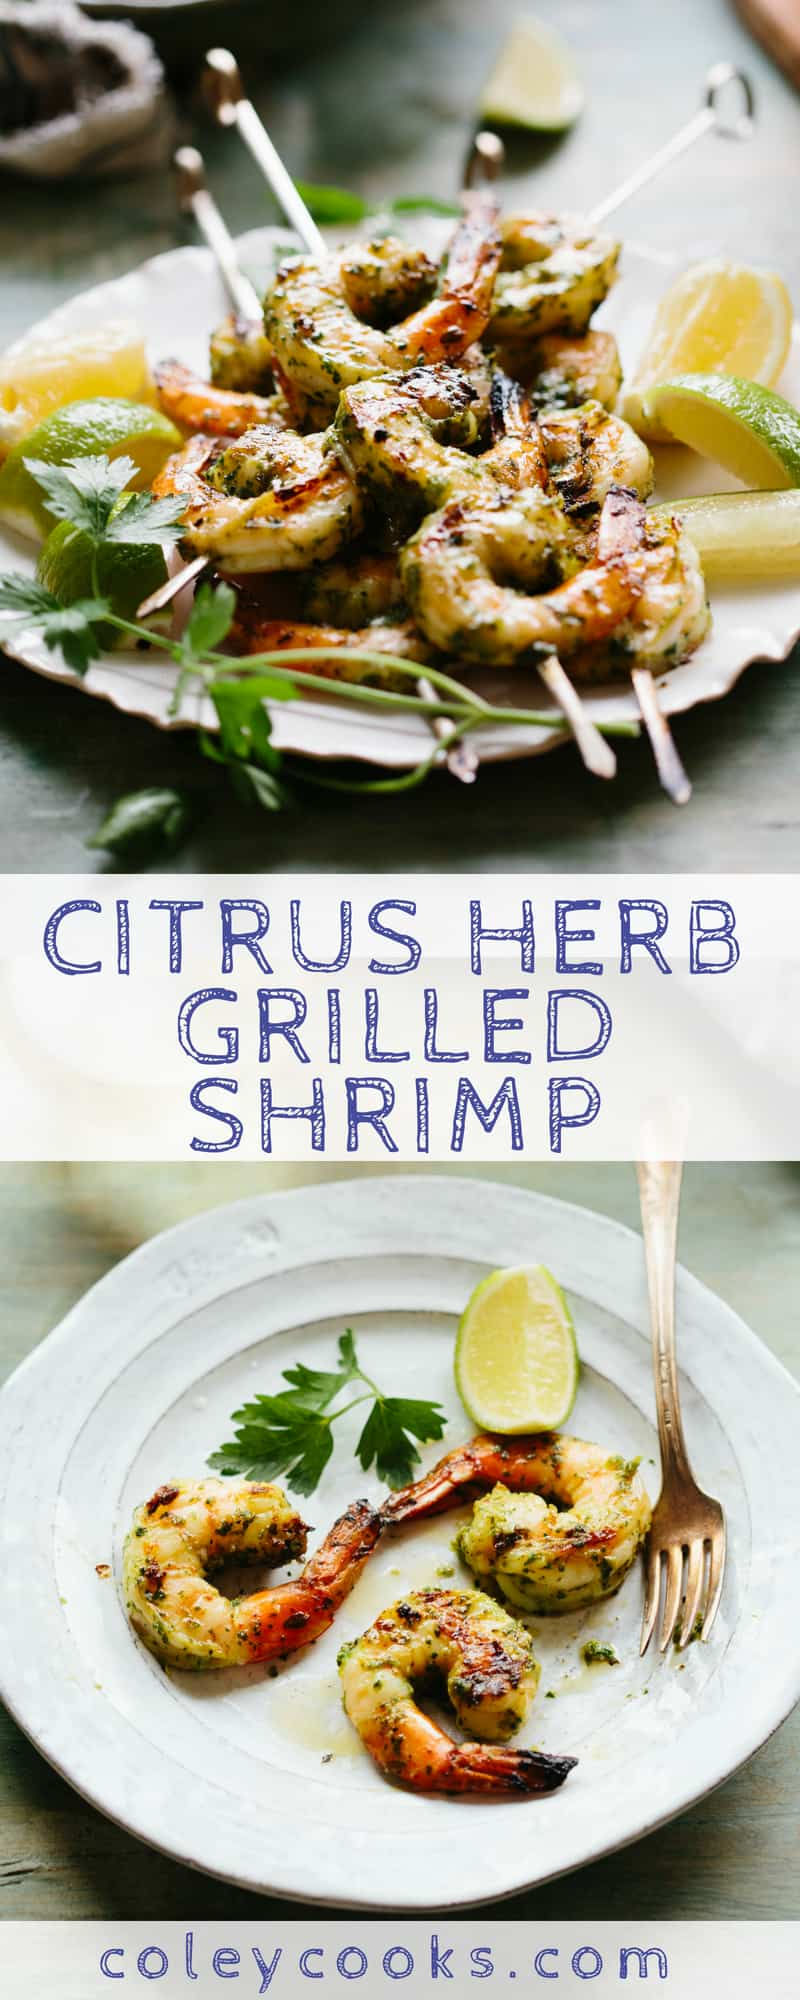 Citrus Herb Grilled Shrimp is easy, healthy and delicious dinner recipe! Great easy weeknight dinner idea or seafood appetizer. A great recipe for entertaining! #easy #shrimp #recipe #entertaining #grilled #dinner | ColeyCooks.com